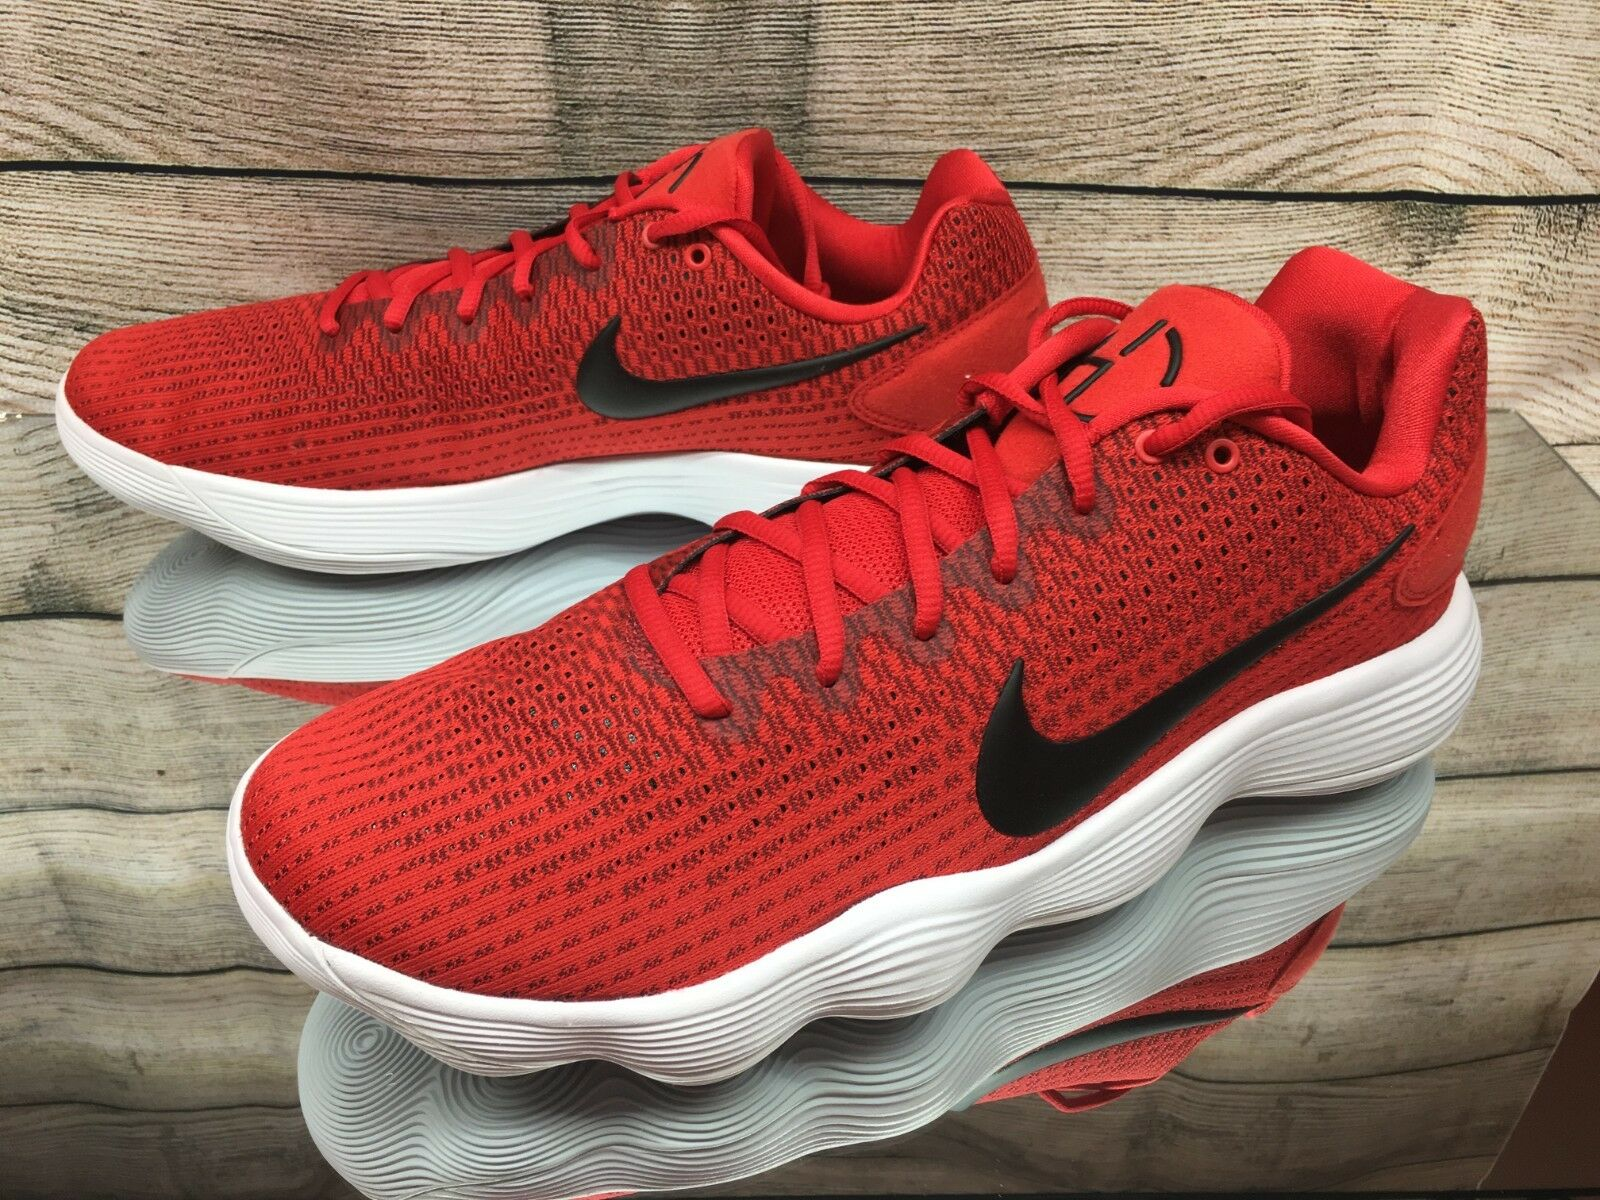 eb66888f51e Nike Hyperdunk 2017 Low Men Basketball Shoes Red Black 897663-600 14 ...